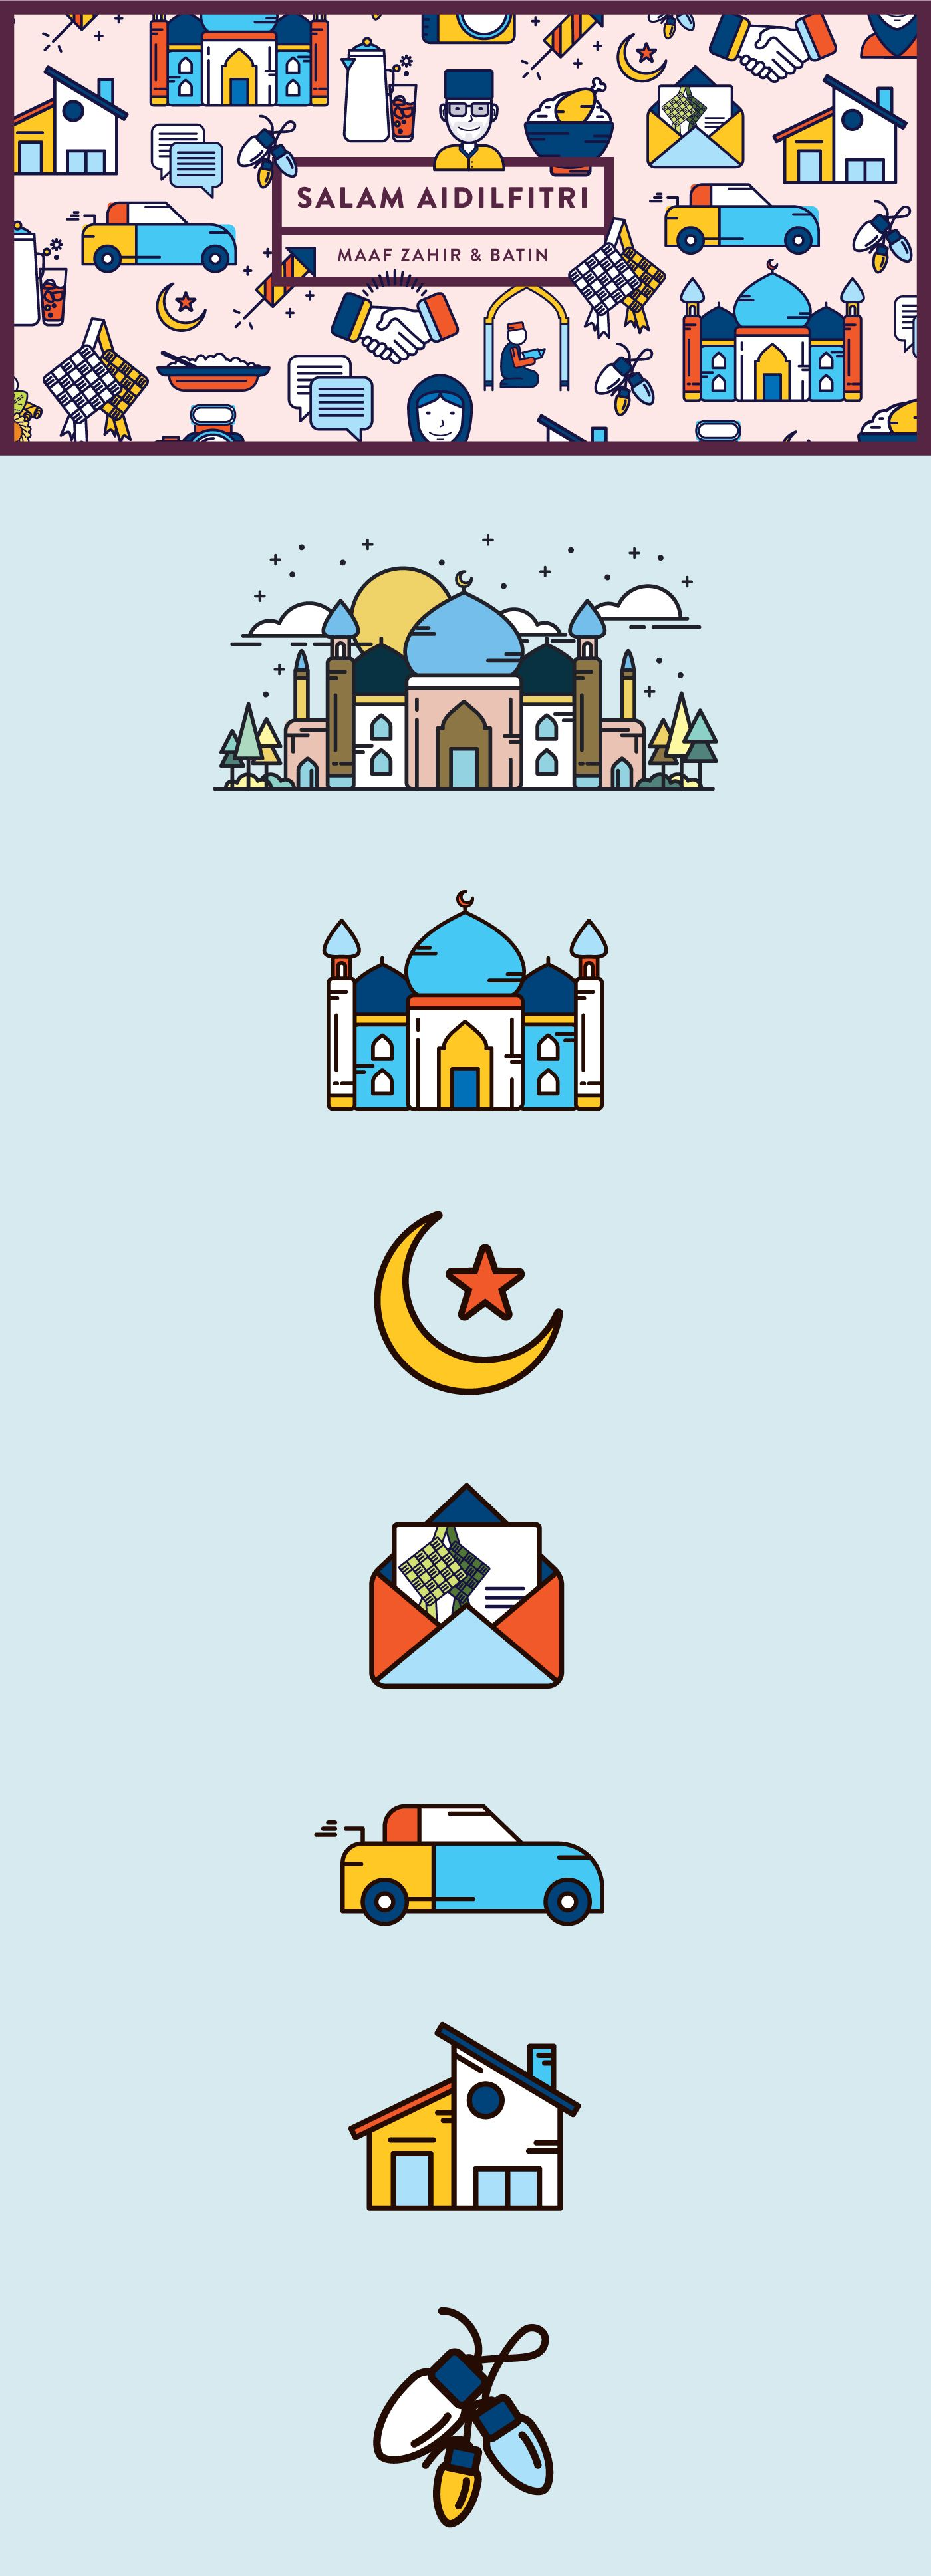 Marking The End Of The Islamic Holy Month Of Ramadan Is